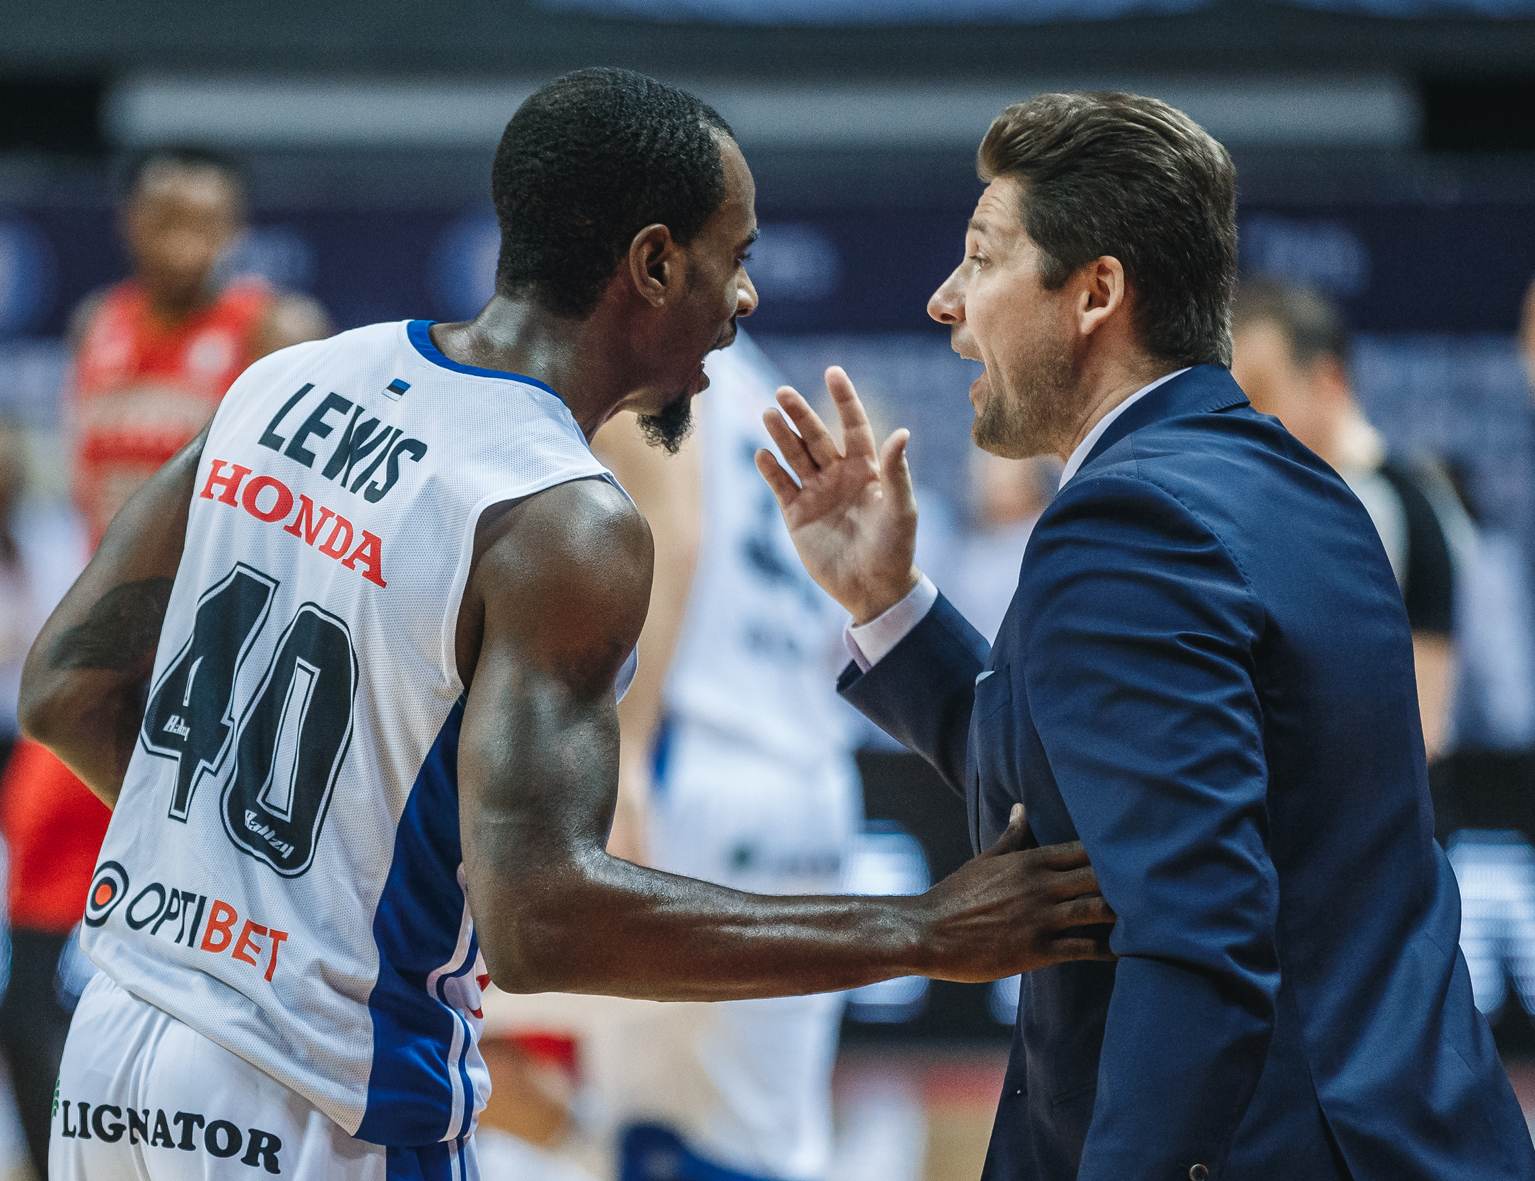 Week 5 In Review: Kalev's Remarkable Win And Showtime In St. Pete